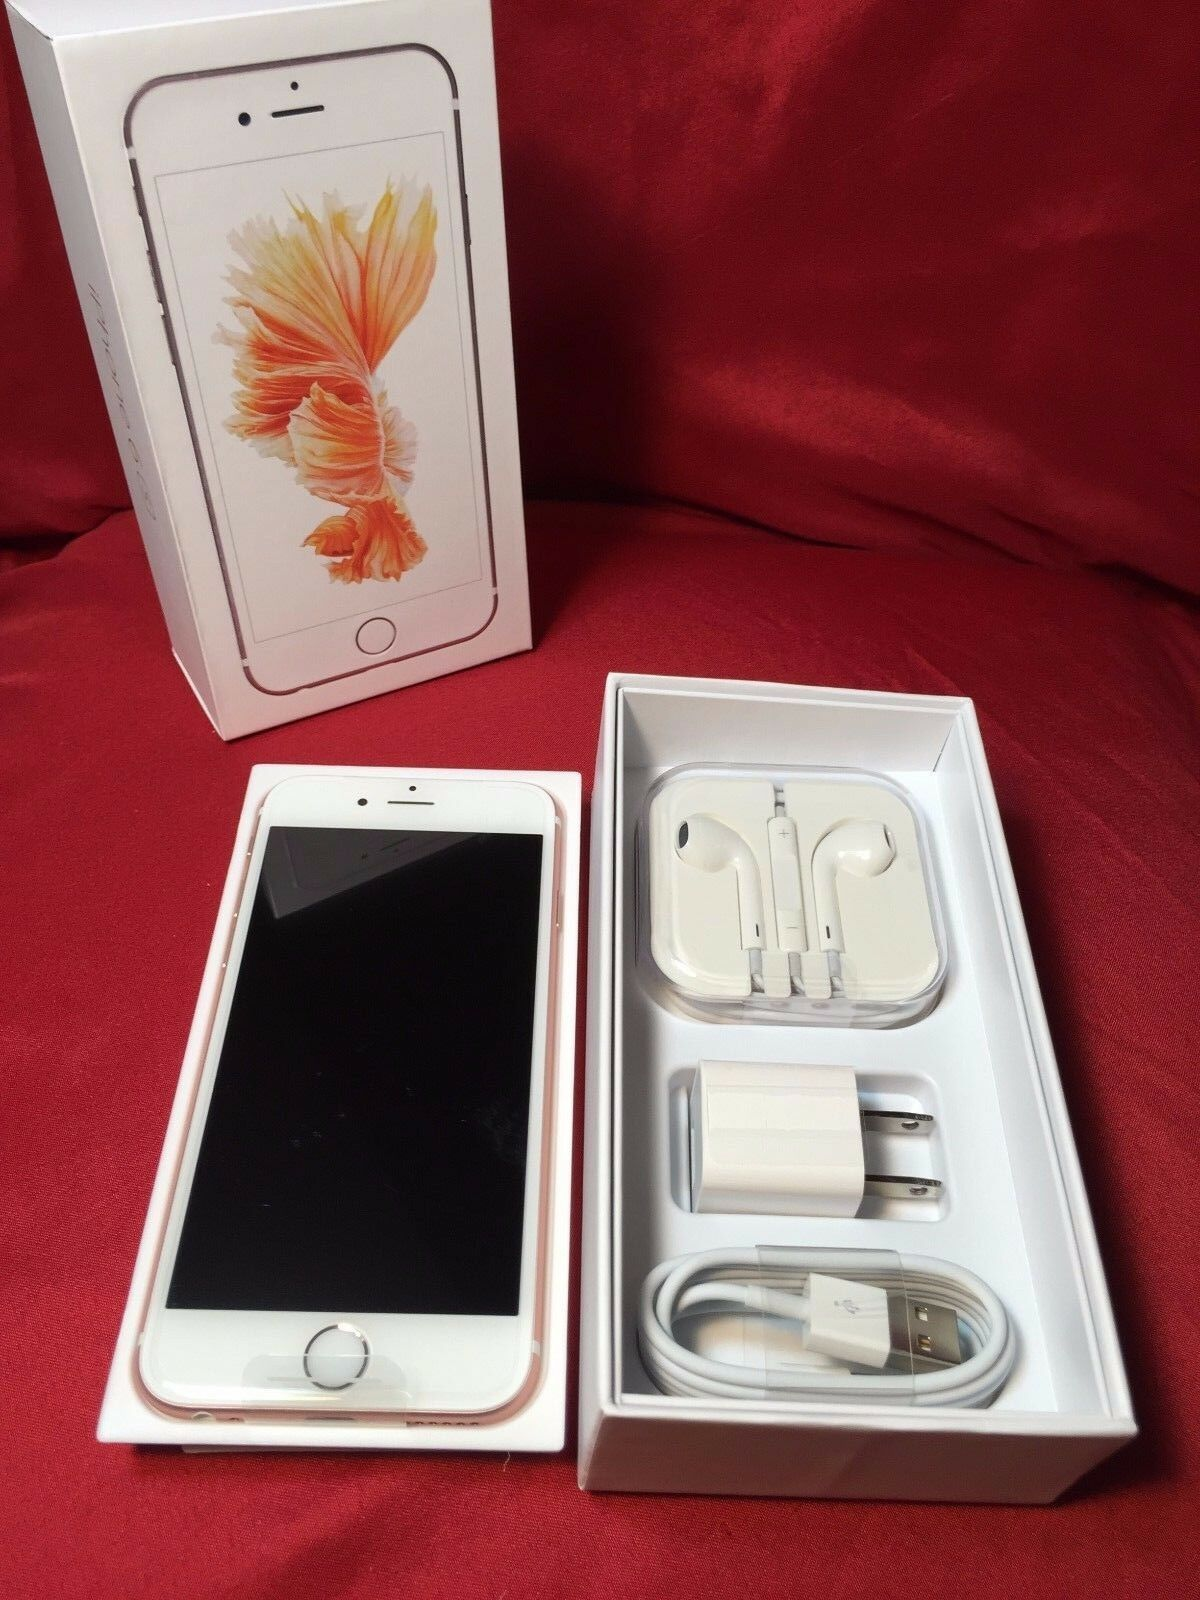 NEW Apple iPhone 6S Plus - 16 / 64 / 128GB (Factory Unlocked) (T-Mobile) (AT&T)